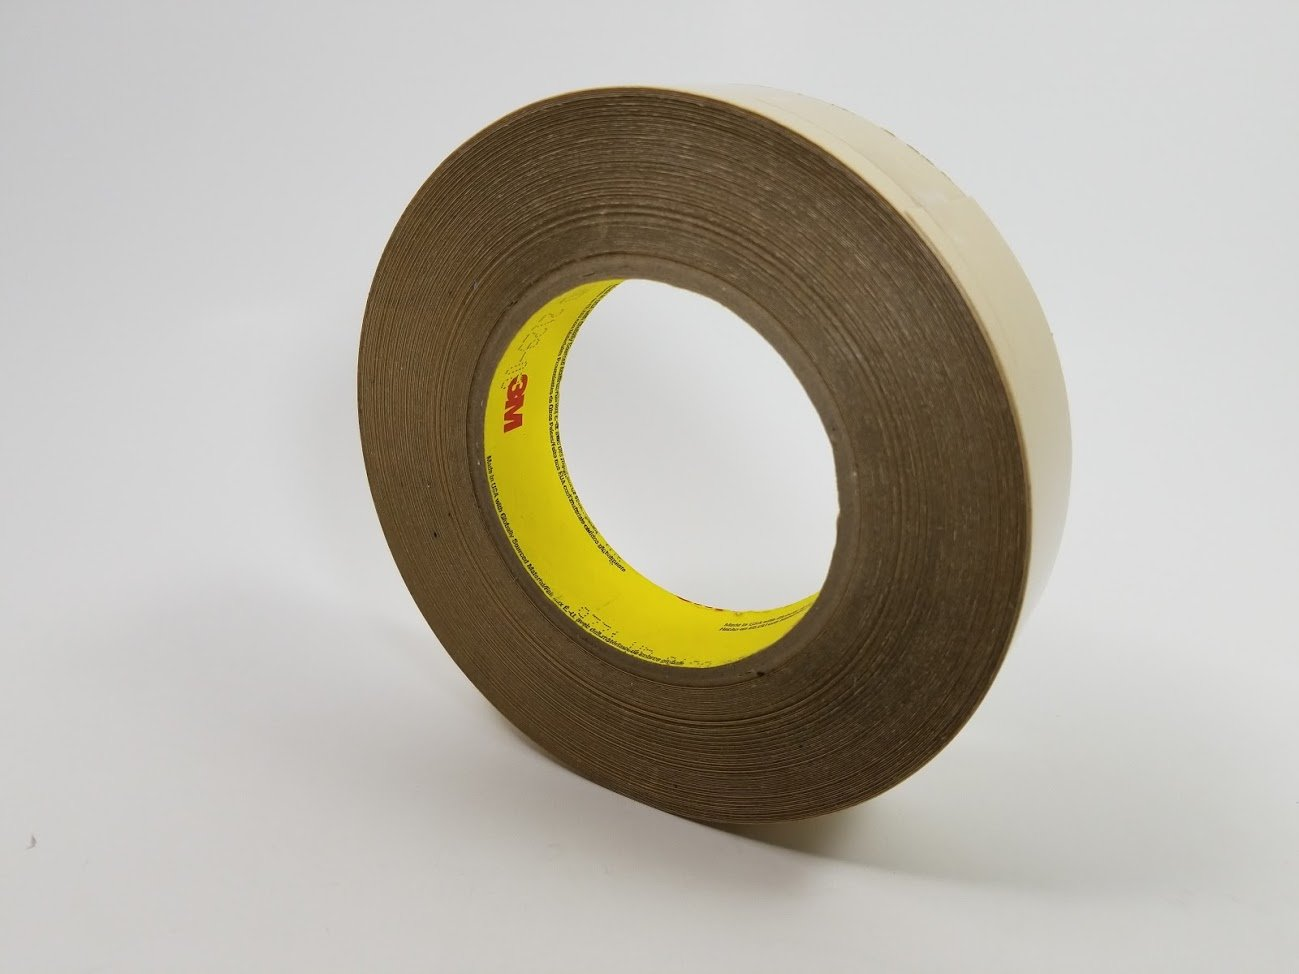 3M 9731 Clear Bonding Tape - 1 in Width x 6.2 mil Thick - Kraft Paper Liner - 95405 [PRICE is per ROLL]